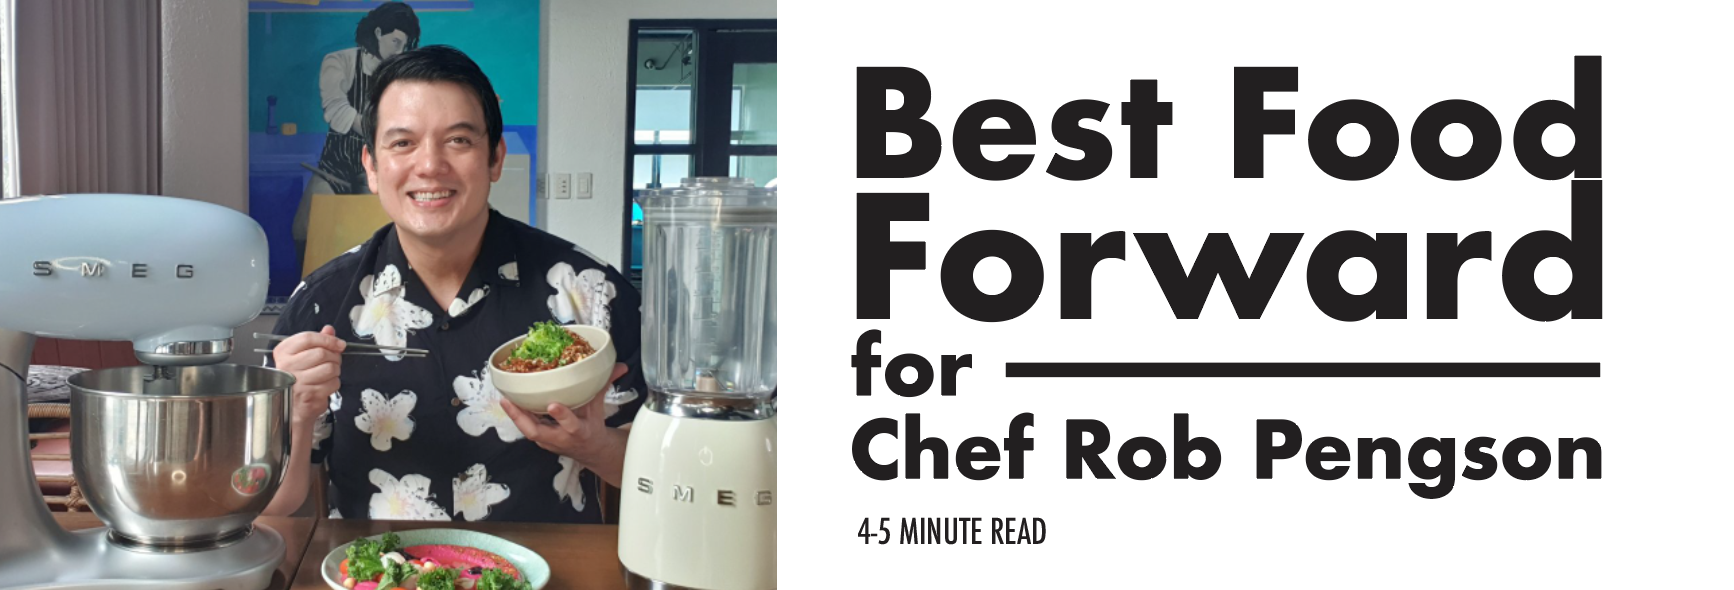 Best Food Forward for Chef Rob Pengson